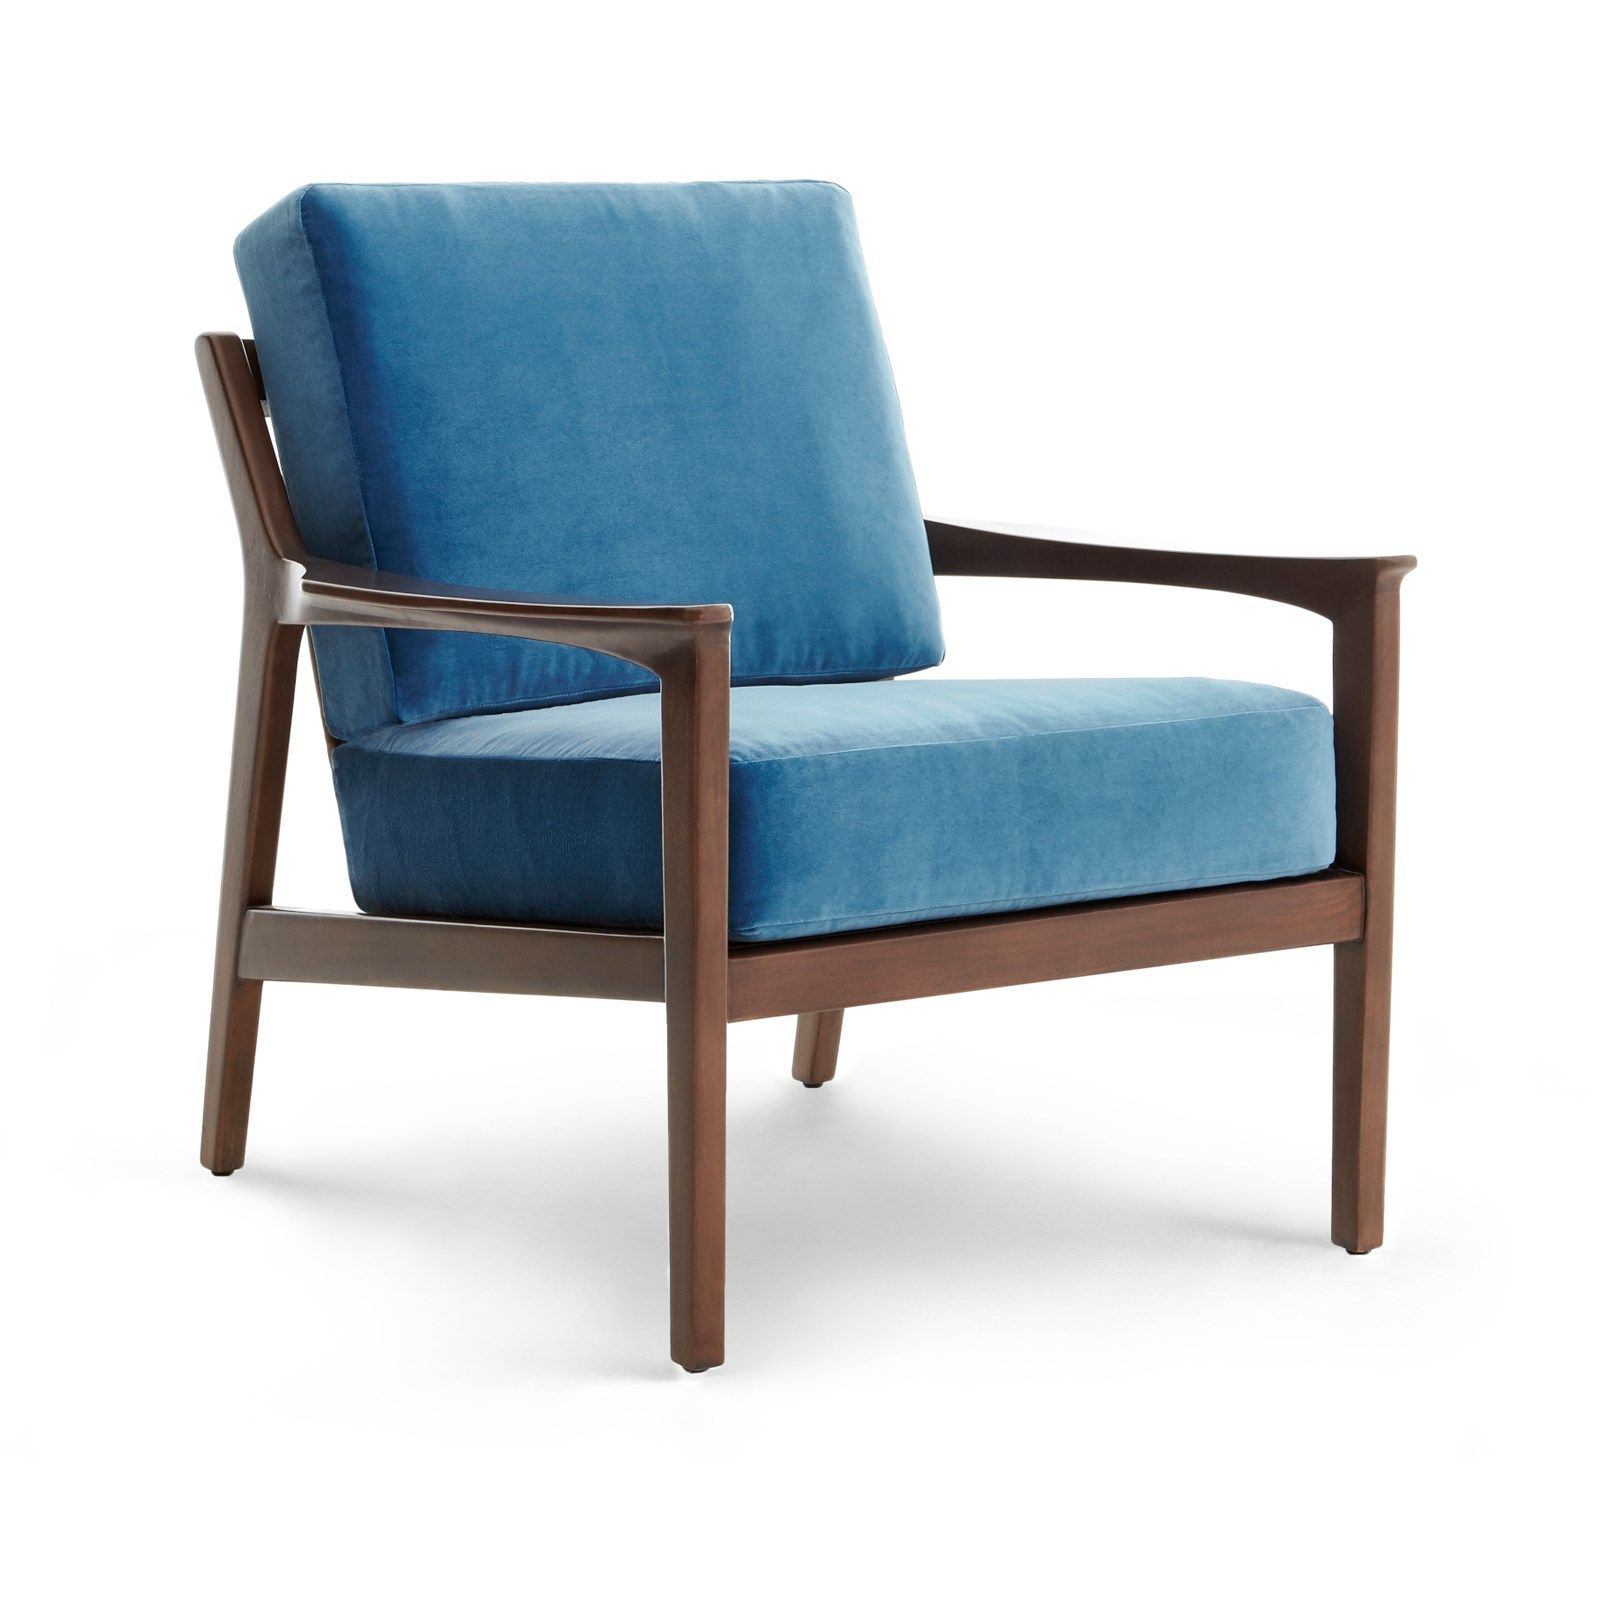 Albin Lounge Chair Covers Sold Separately Walnut